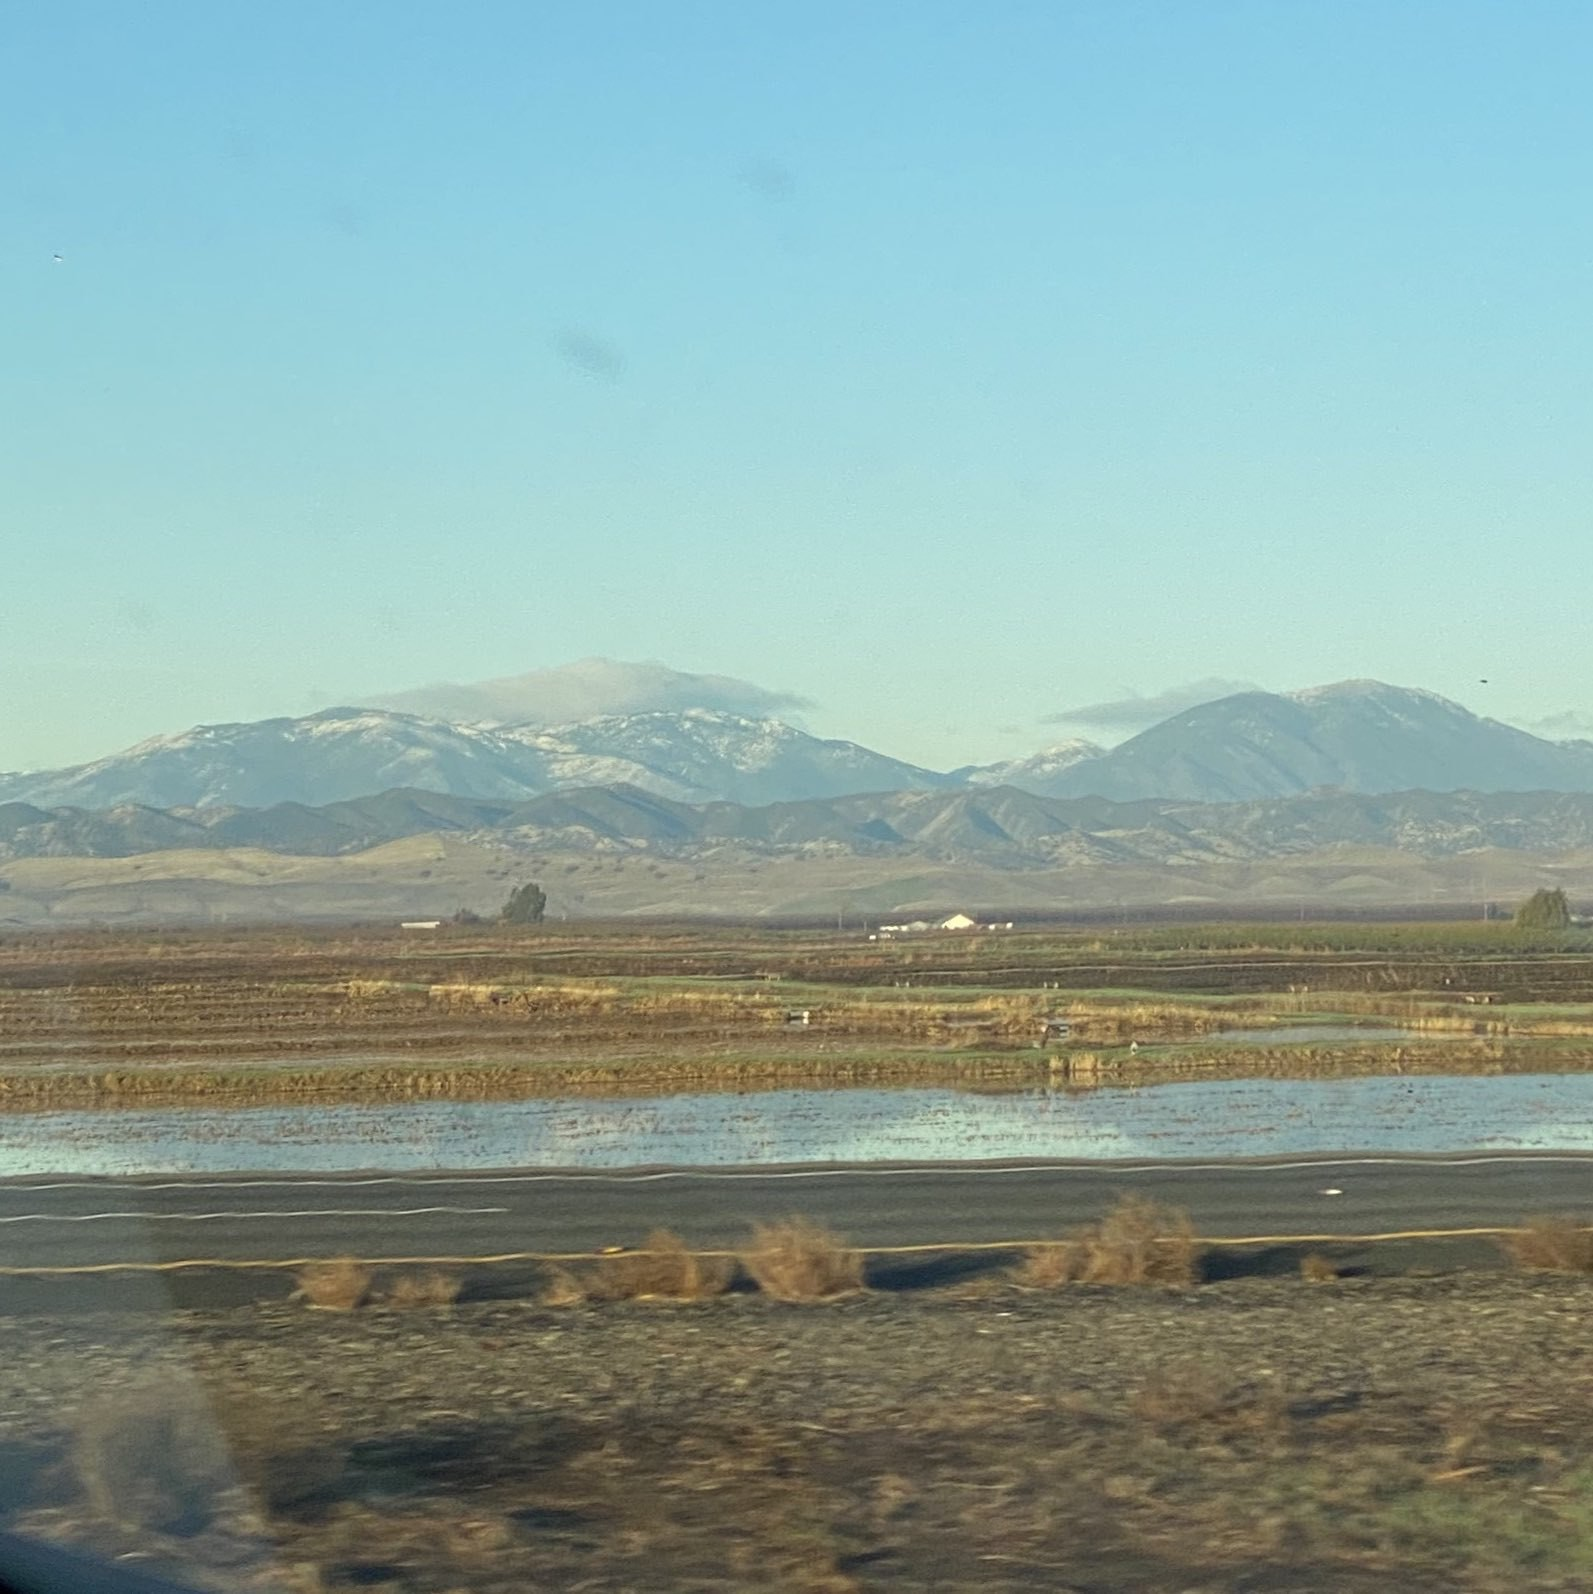 snowy mountain tops along a highway